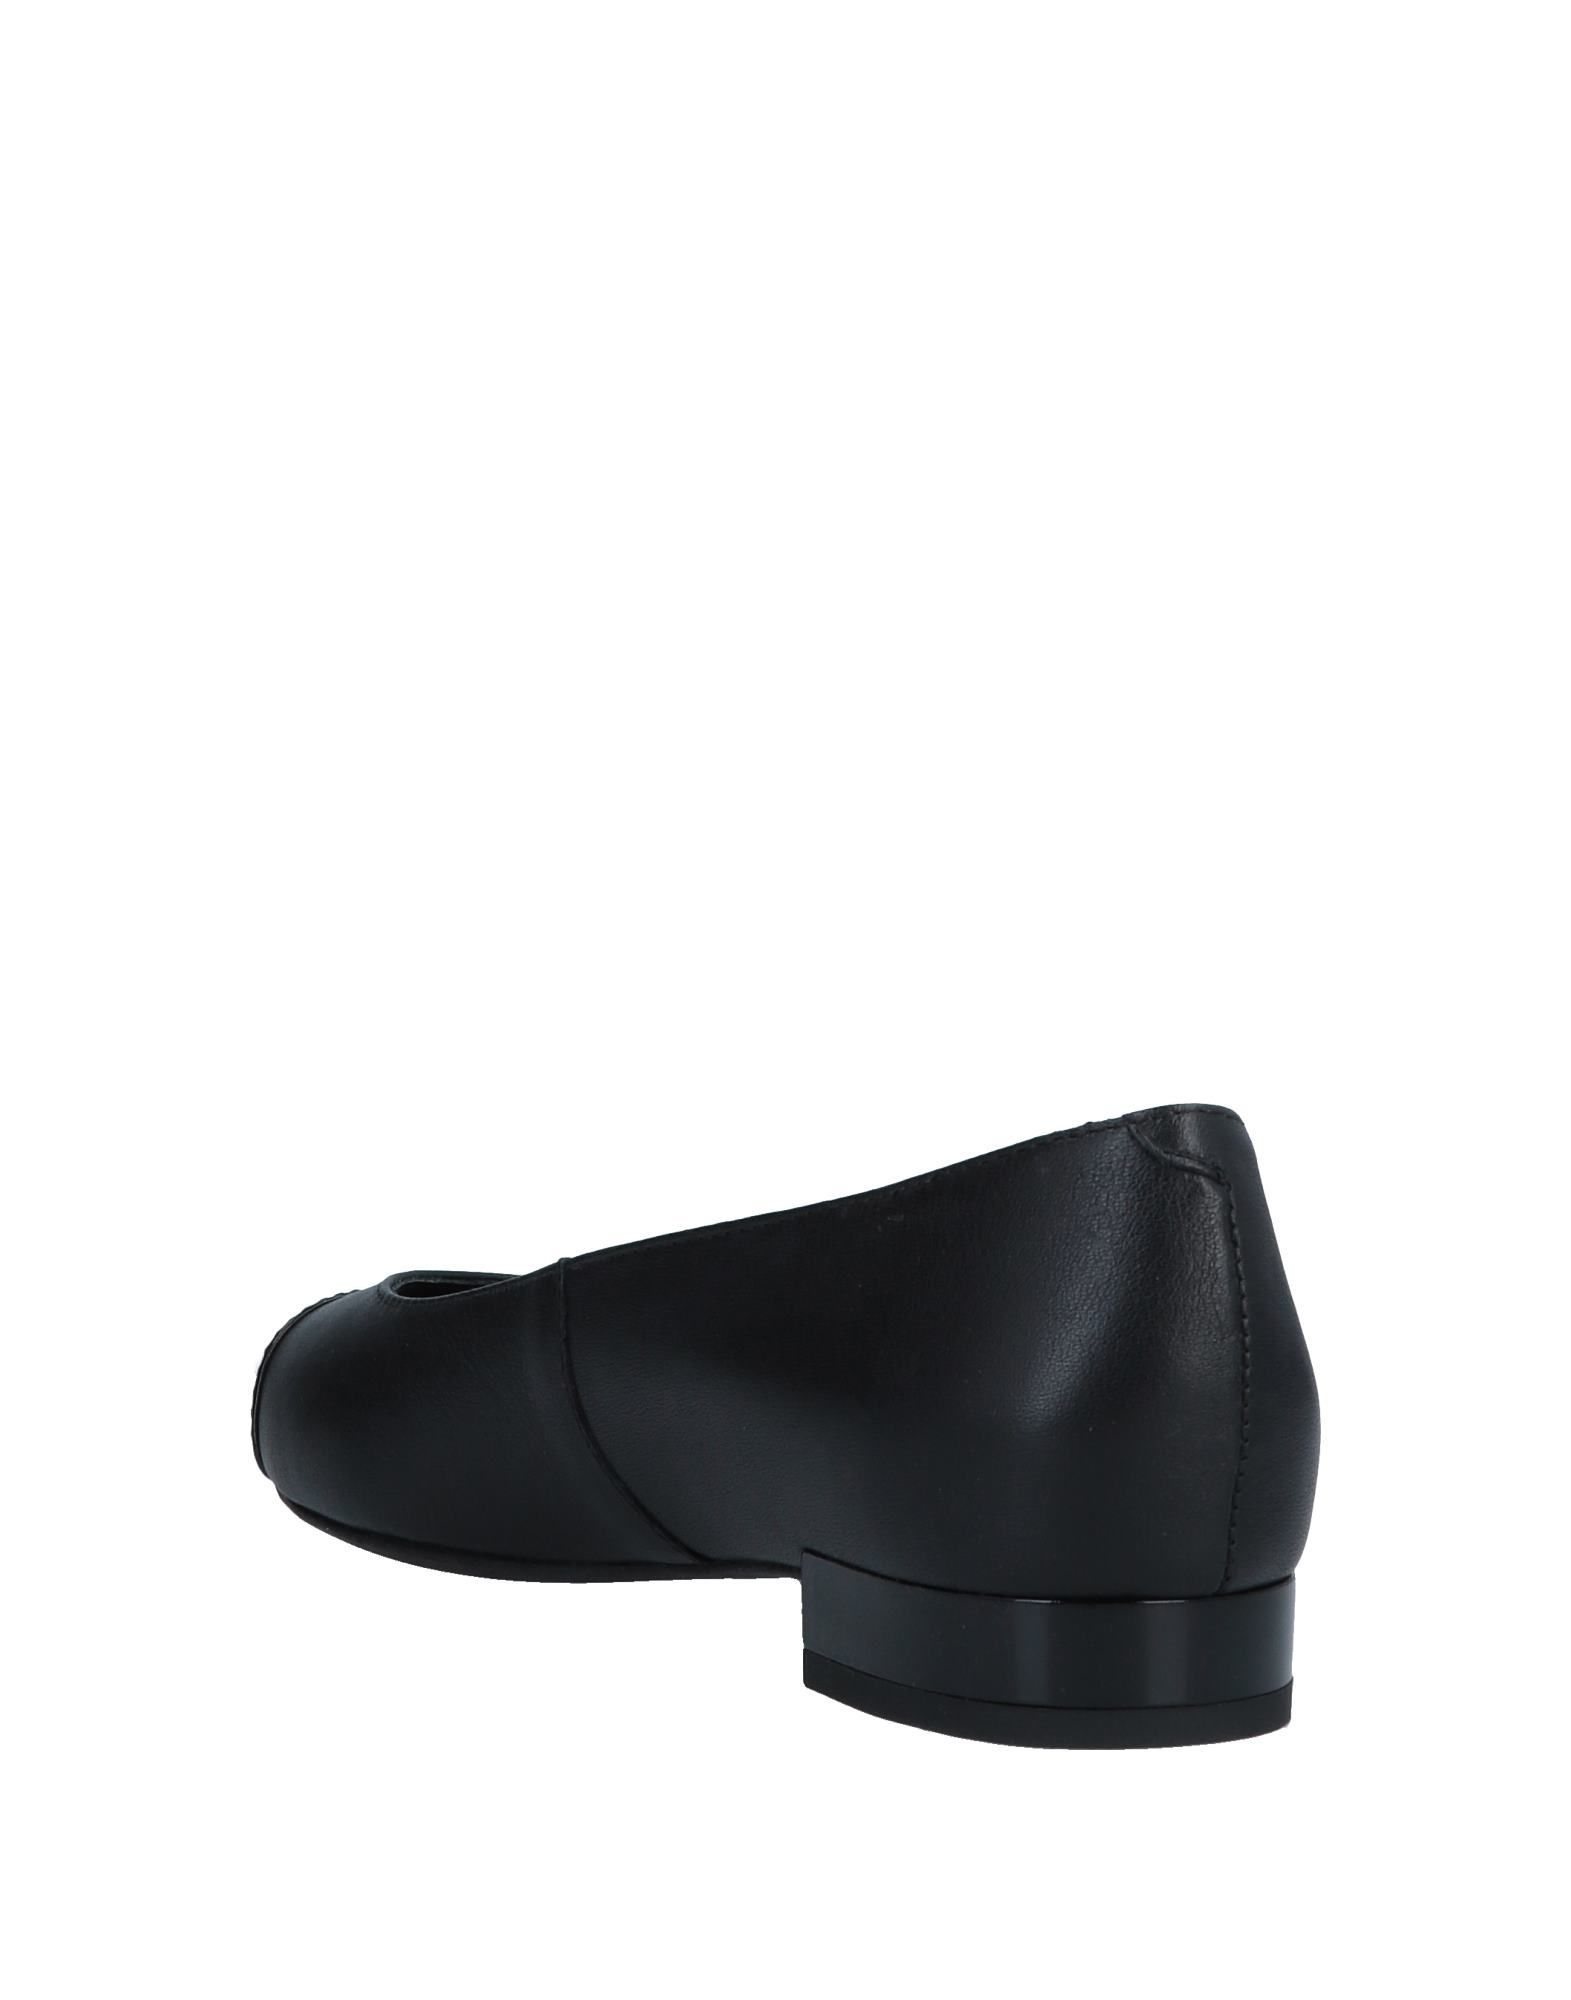 Geox Black Leather Pointed Ballet Flats